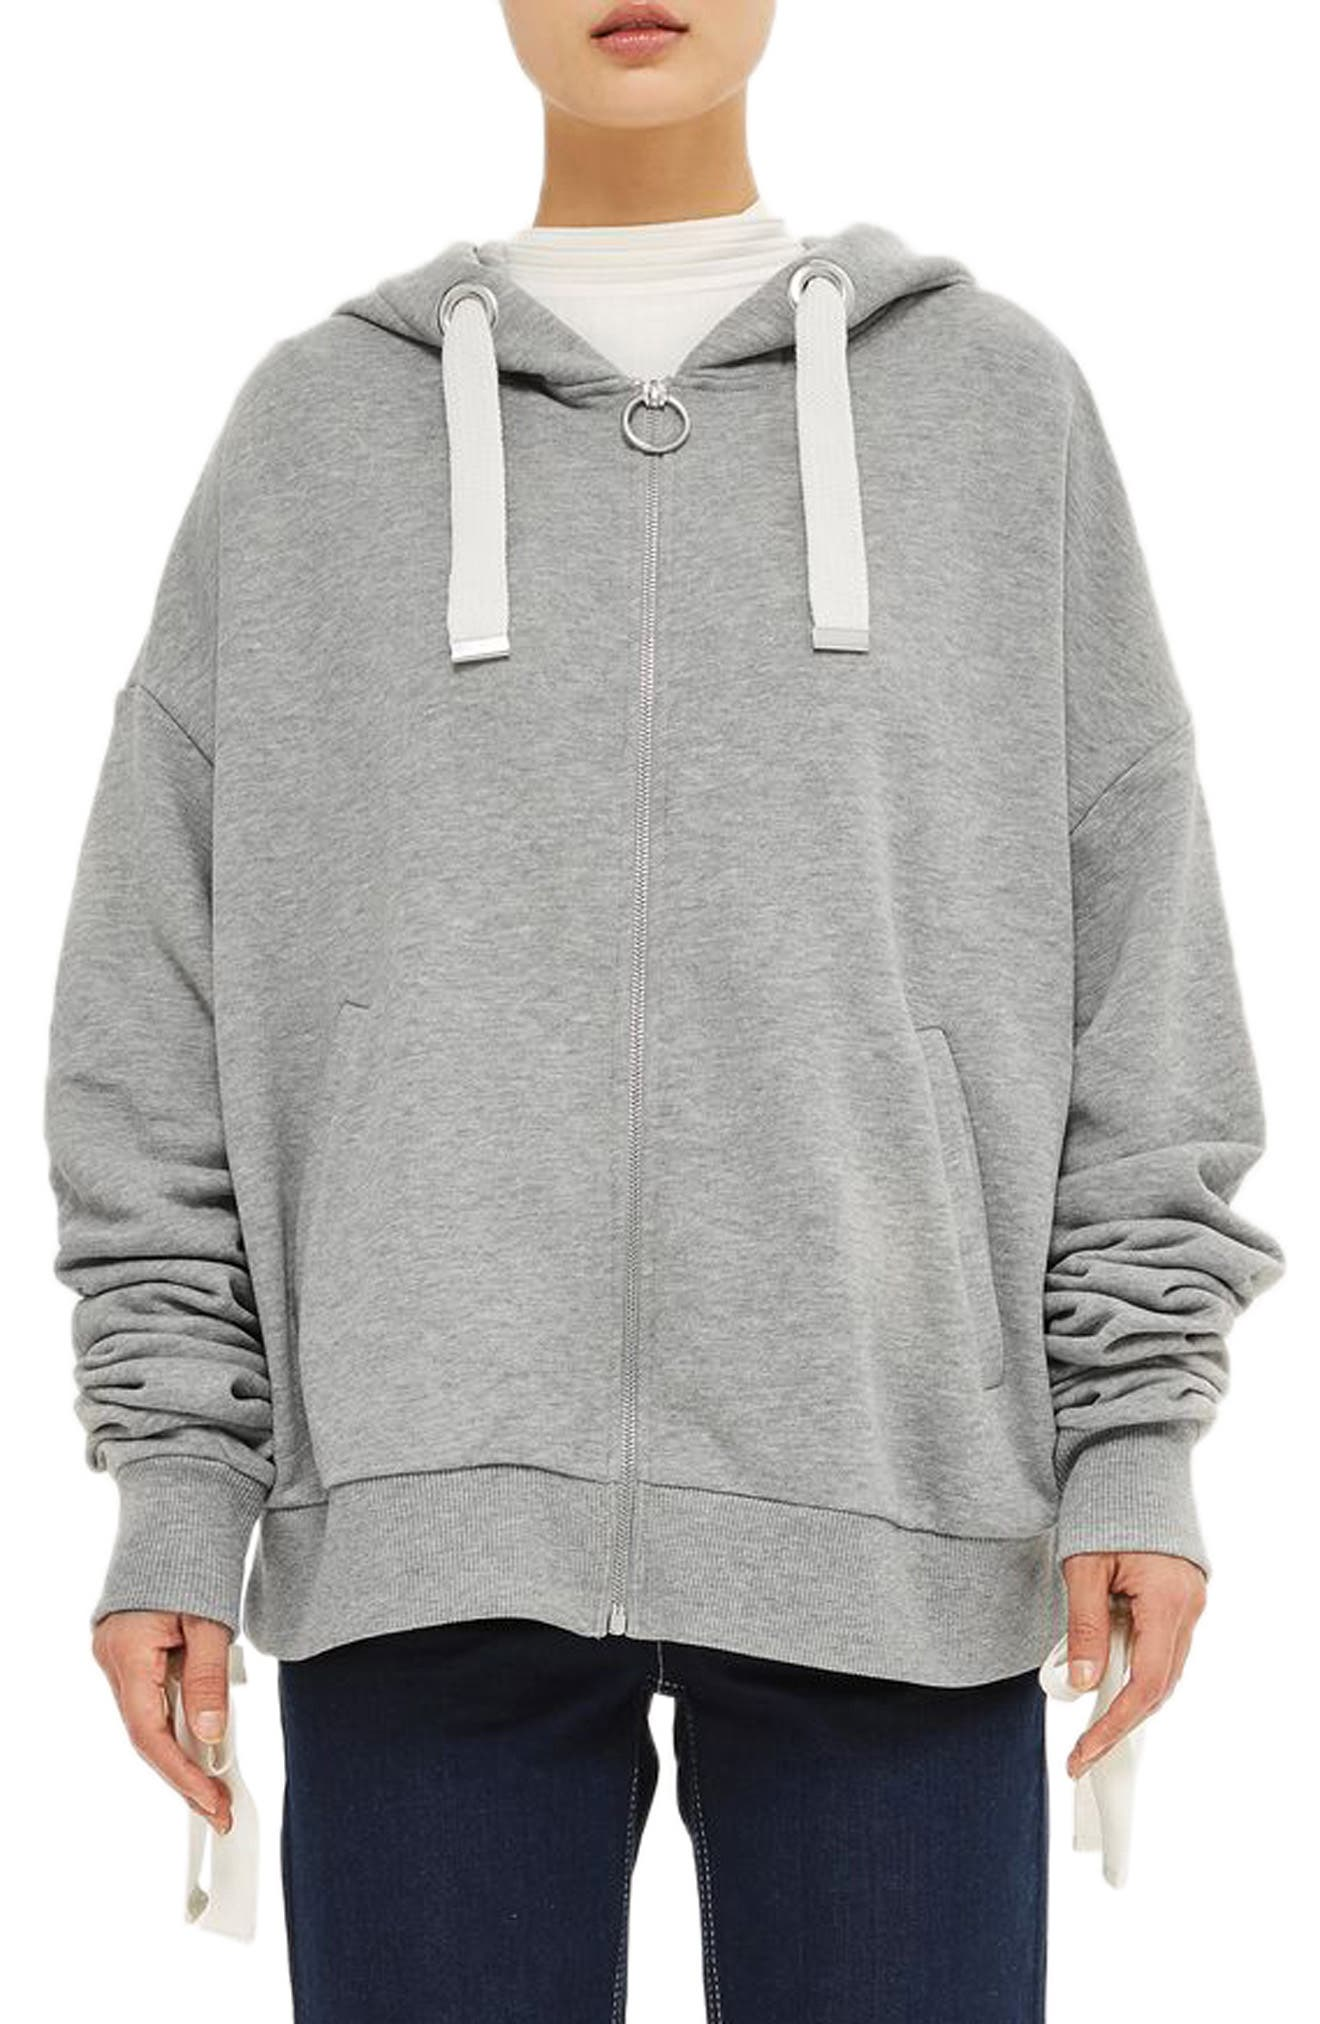 Topshop Boutique Ruched Sleeve Hoodie